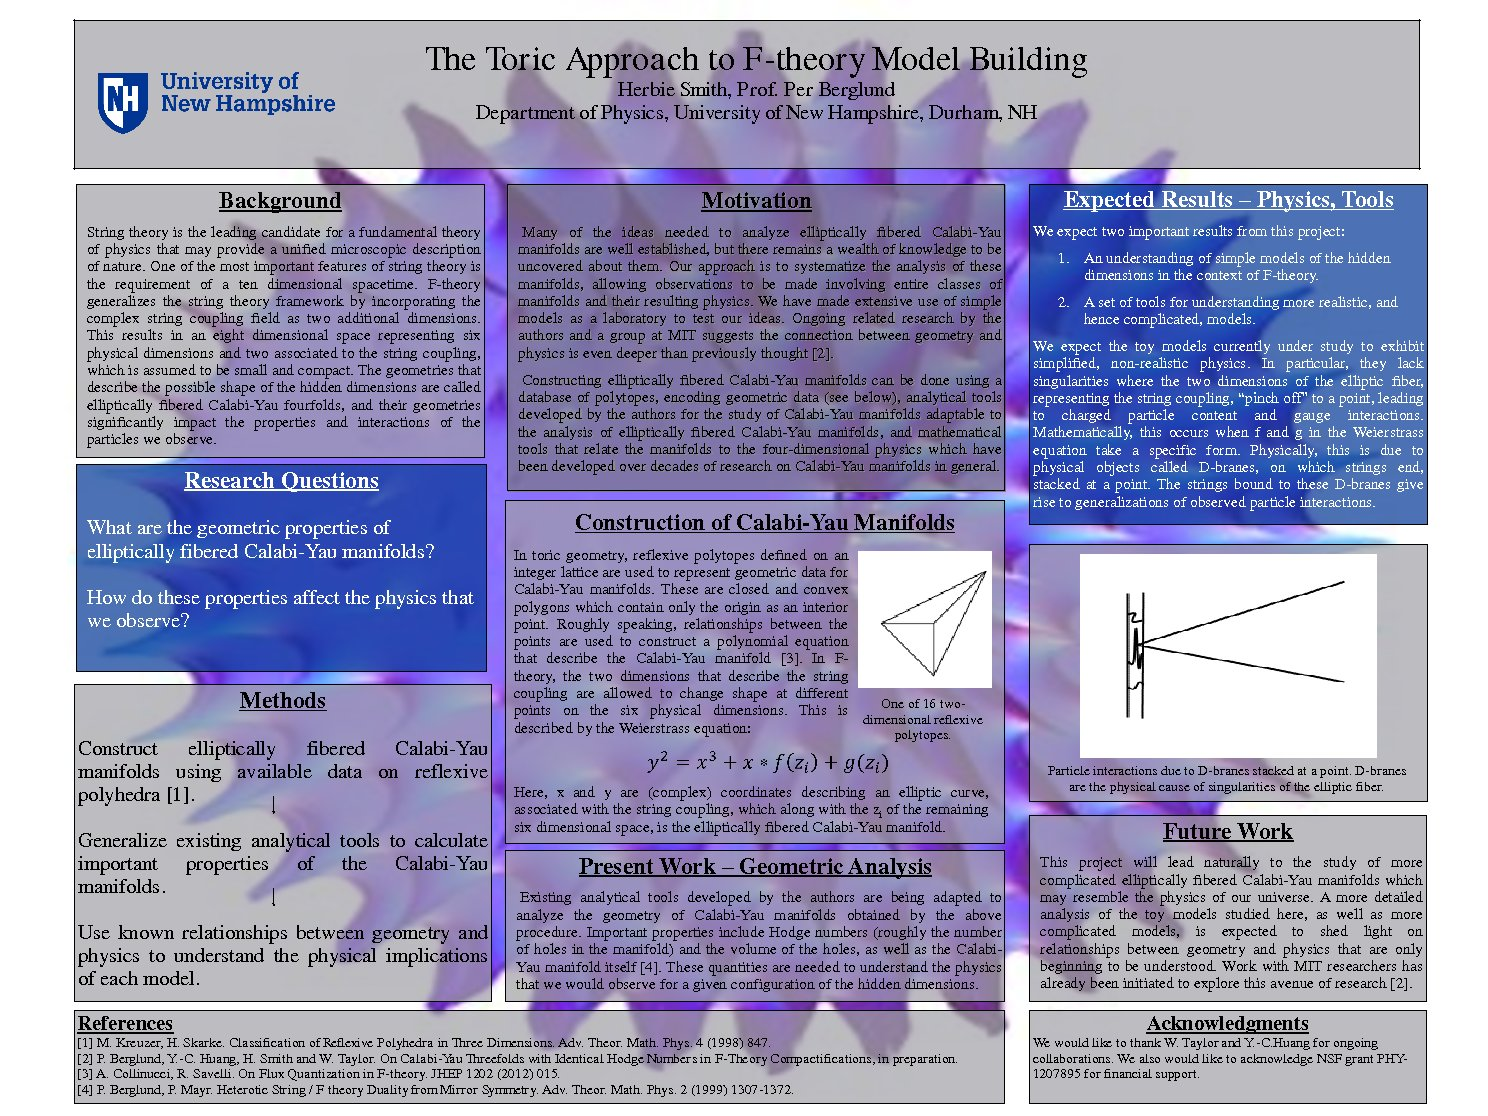 The Toric Approach To F-Theory Model Building by hlk25